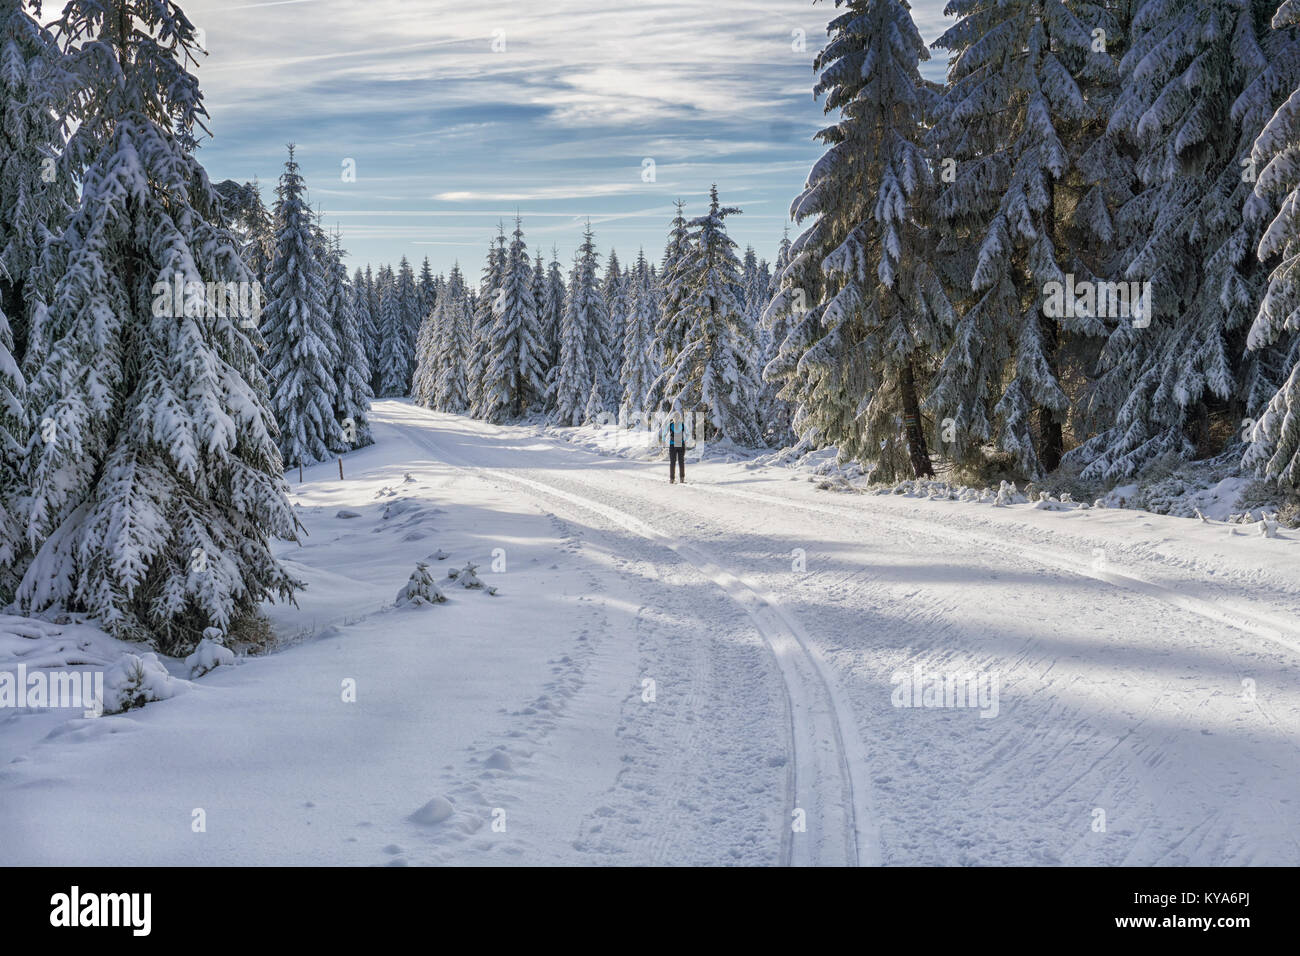 Road in mountains at winter in sunny day with single cross country skier. Trees covered with hoarfrost illuminated - Stock Image